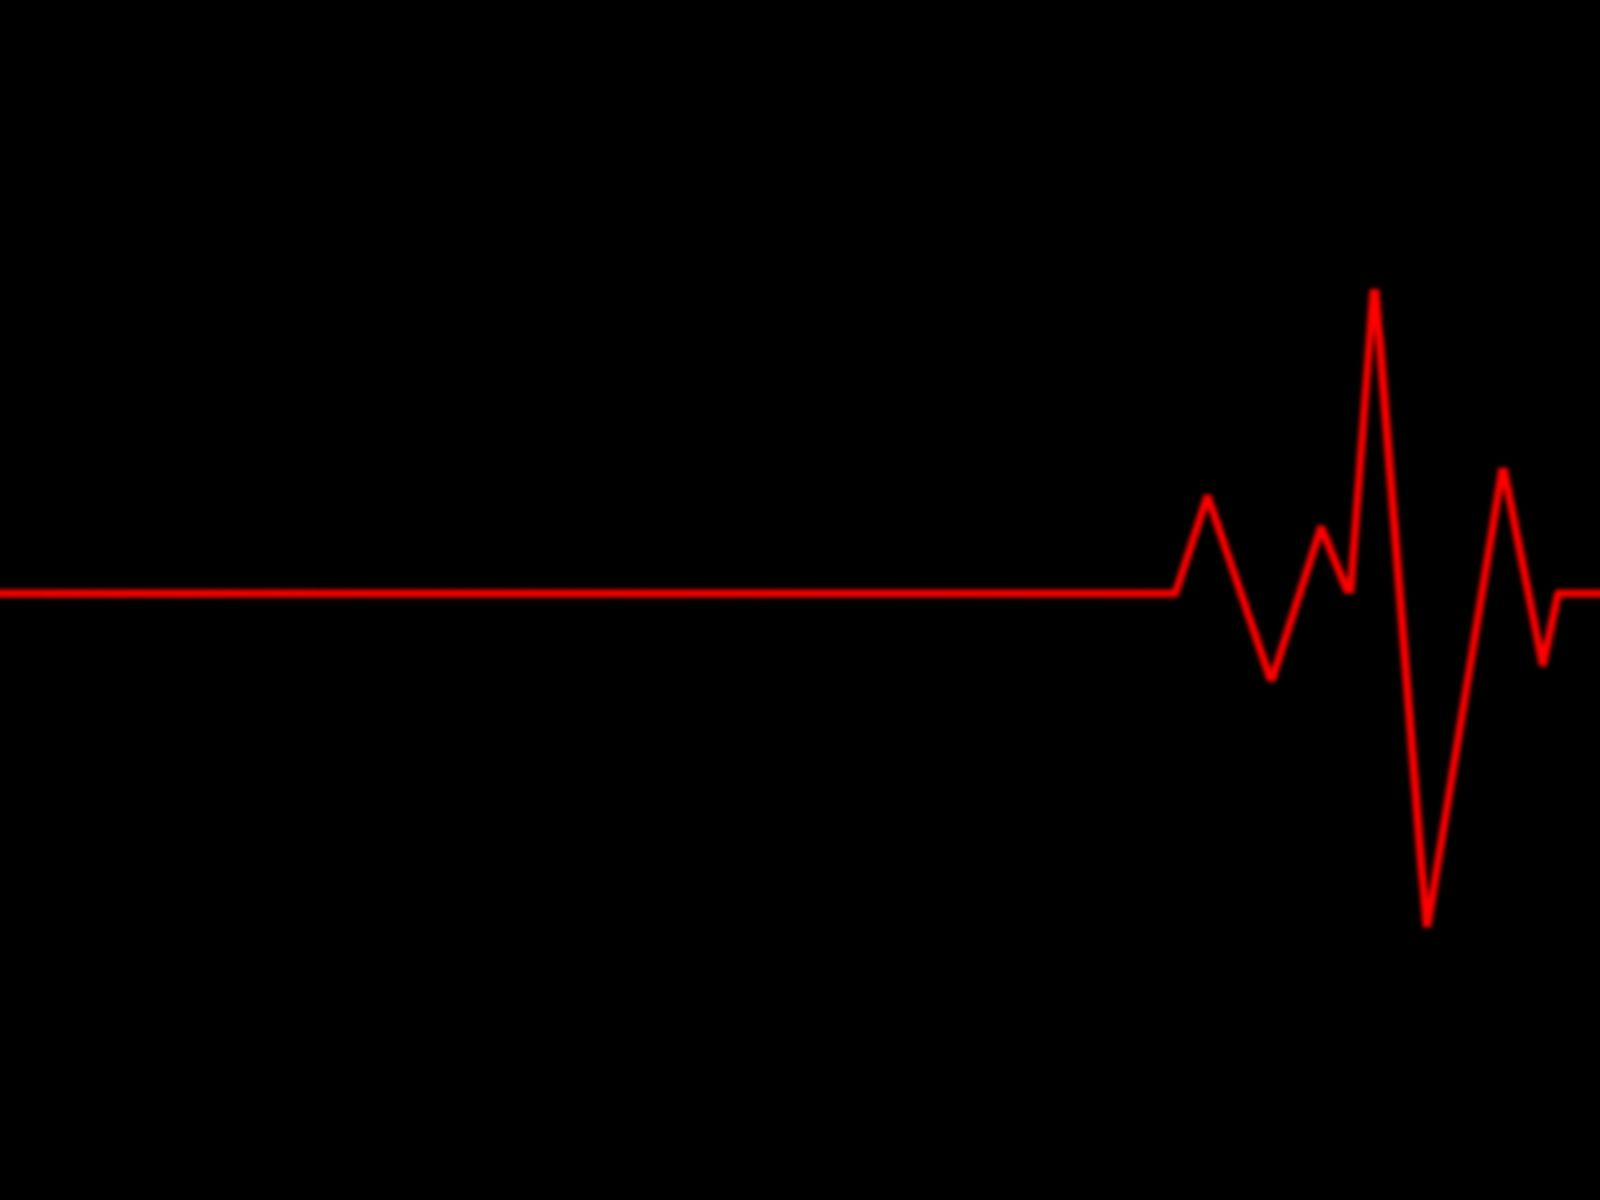 Heartbeat WallpapersWallpaper Cave 1870